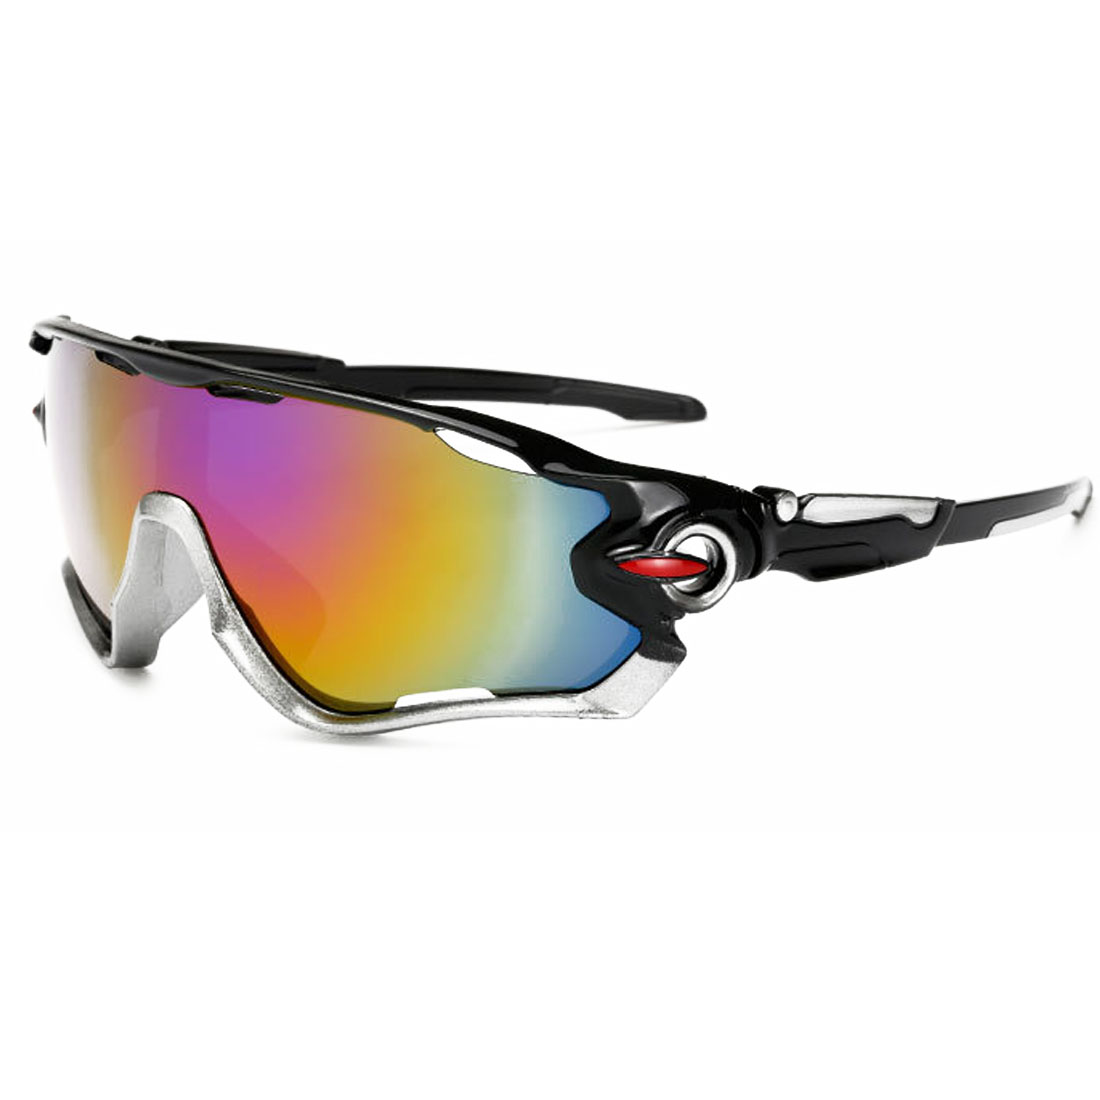 NEW 2018 Design Cycling Eyewear Bike Bicycle Sports Glasses Hiking  Men Motorcycle Sunglasses Reflective Explosion-proof Goggles